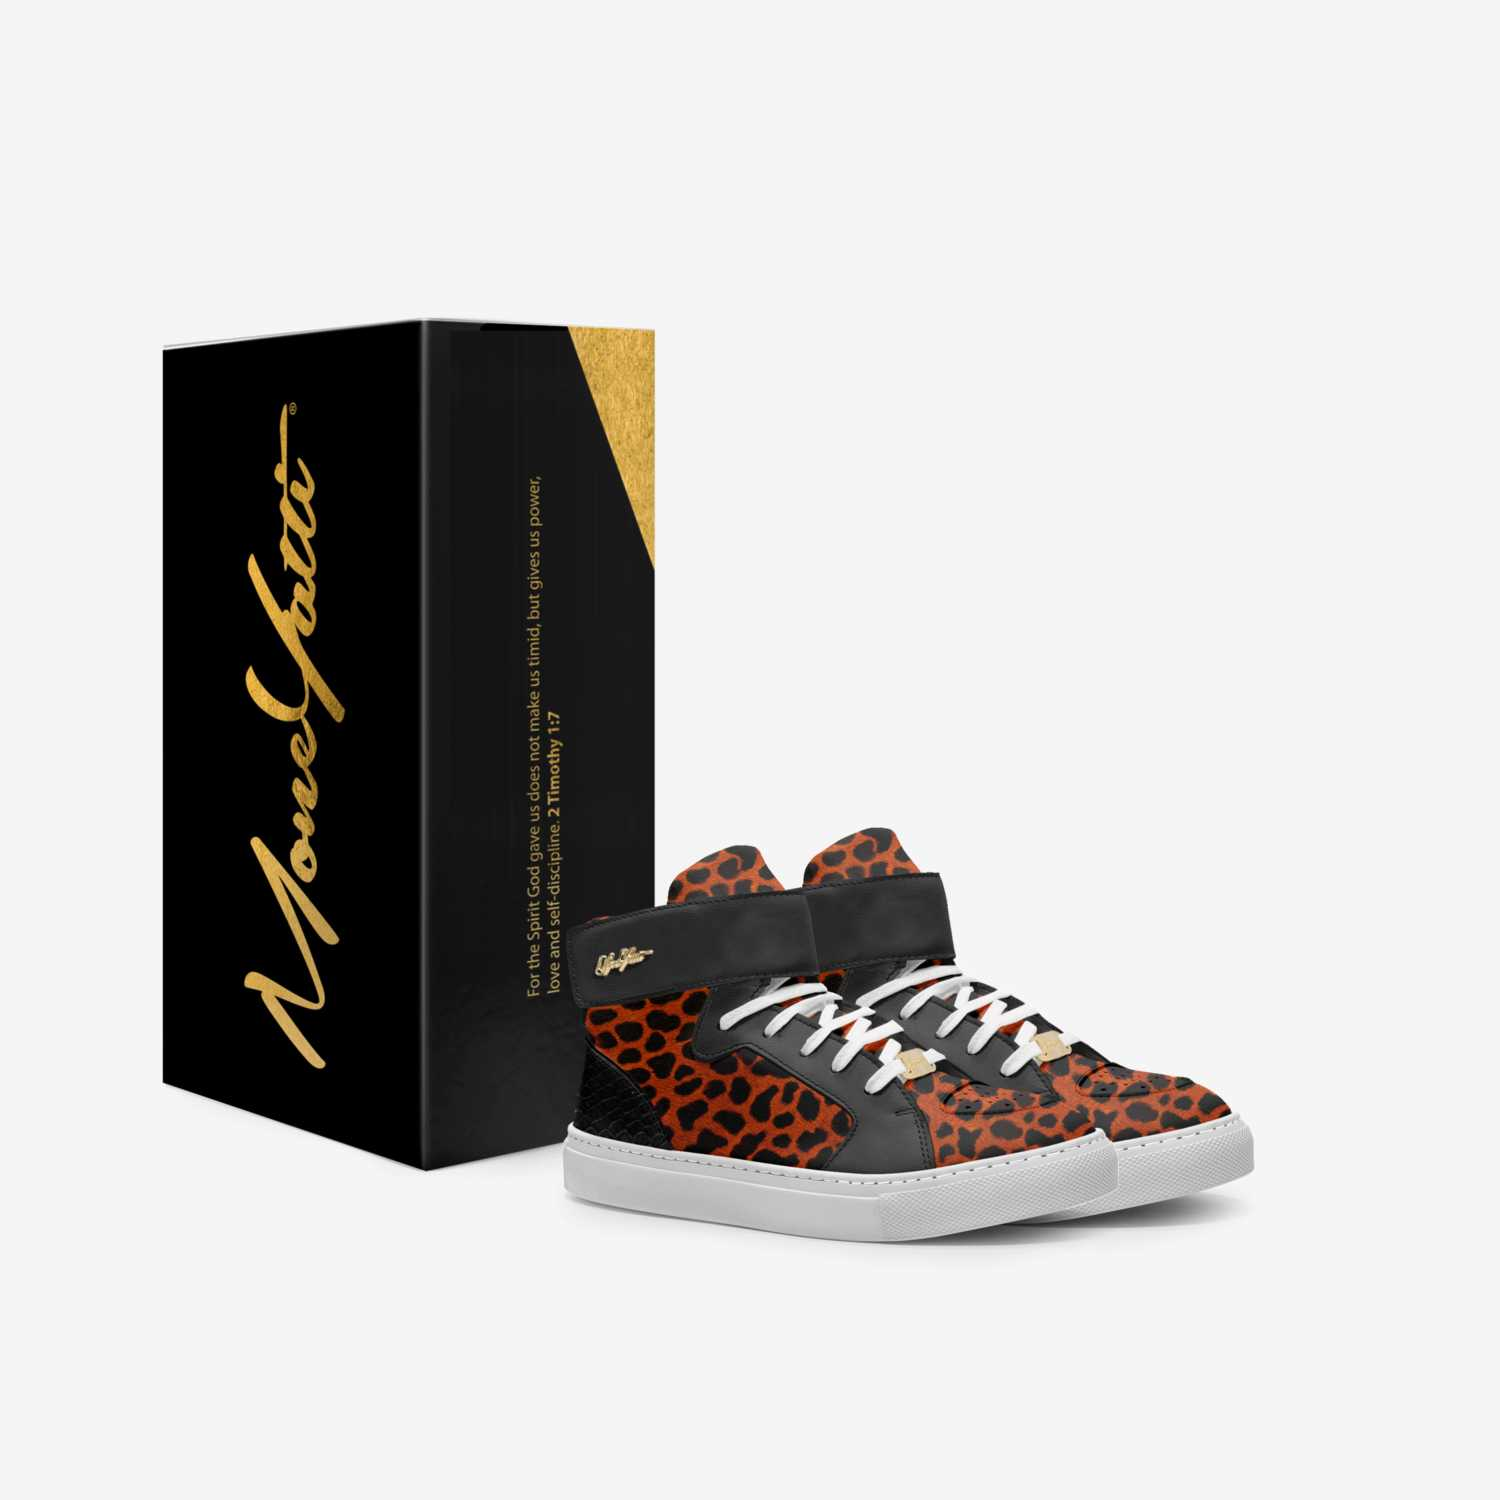 Moneyatti KidH07 custom made in Italy shoes by Moneyatti Brand | Box view